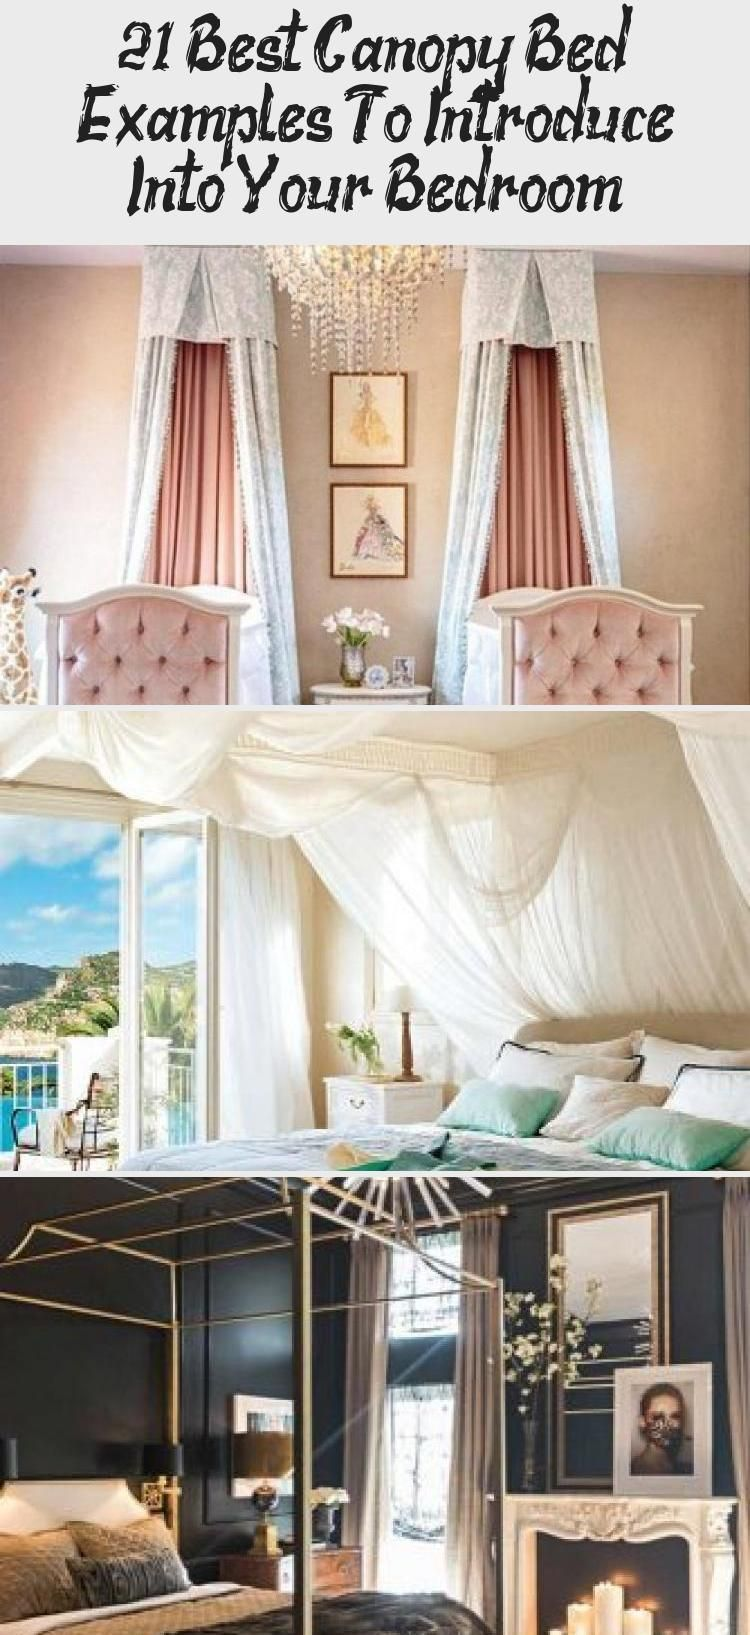 Boho Bedroom Design With Rustic Bed #plants ★ Best canopy ... on Modern Boho Bed Frame  id=16769